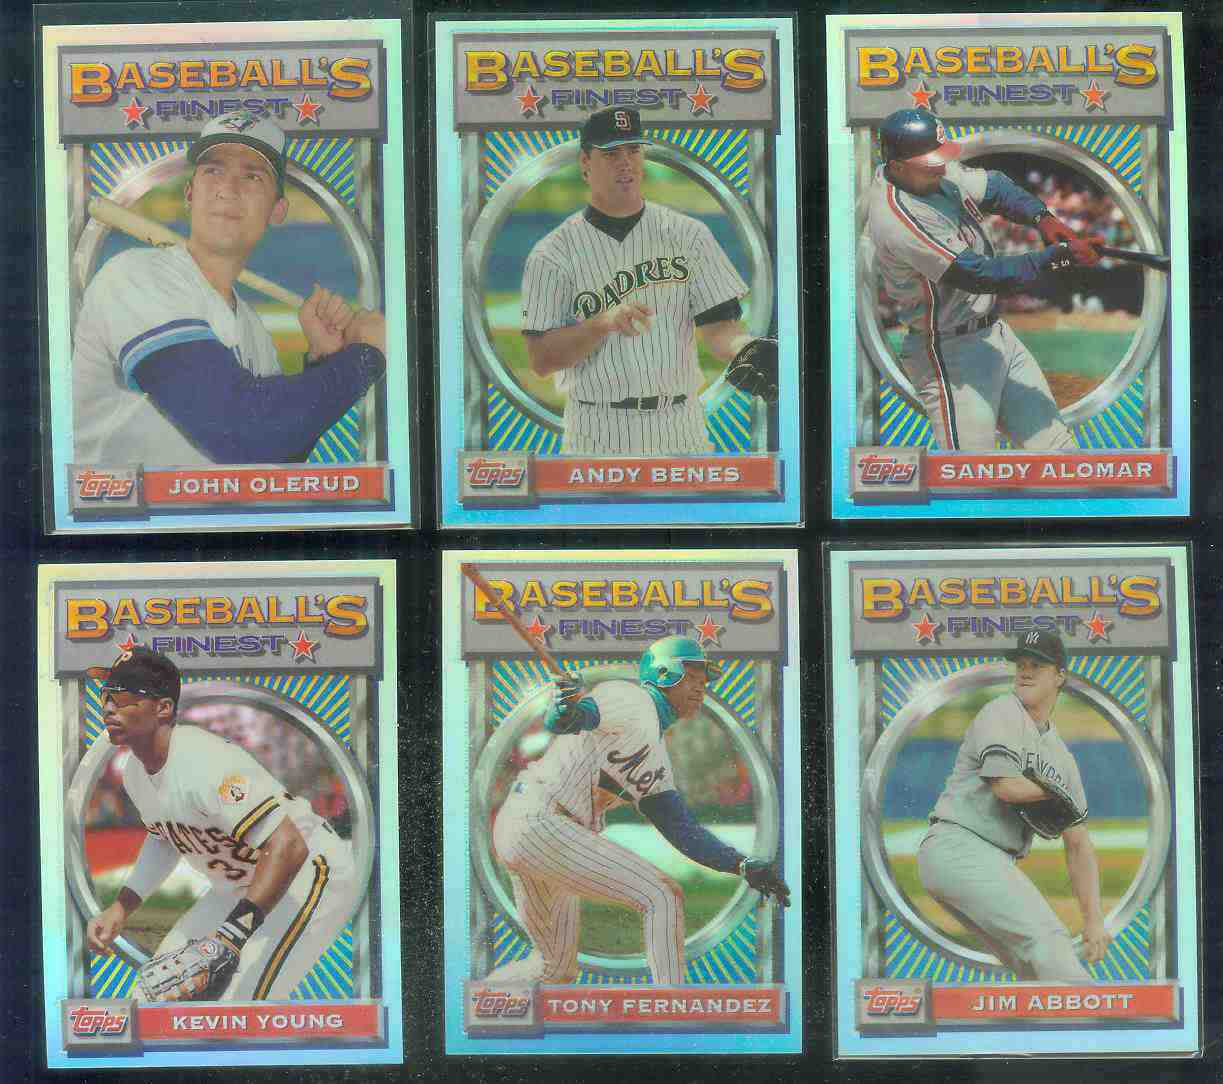 1993 Finest REFRACTOR # 36 Tony Fernandez (Mets) Baseball cards value